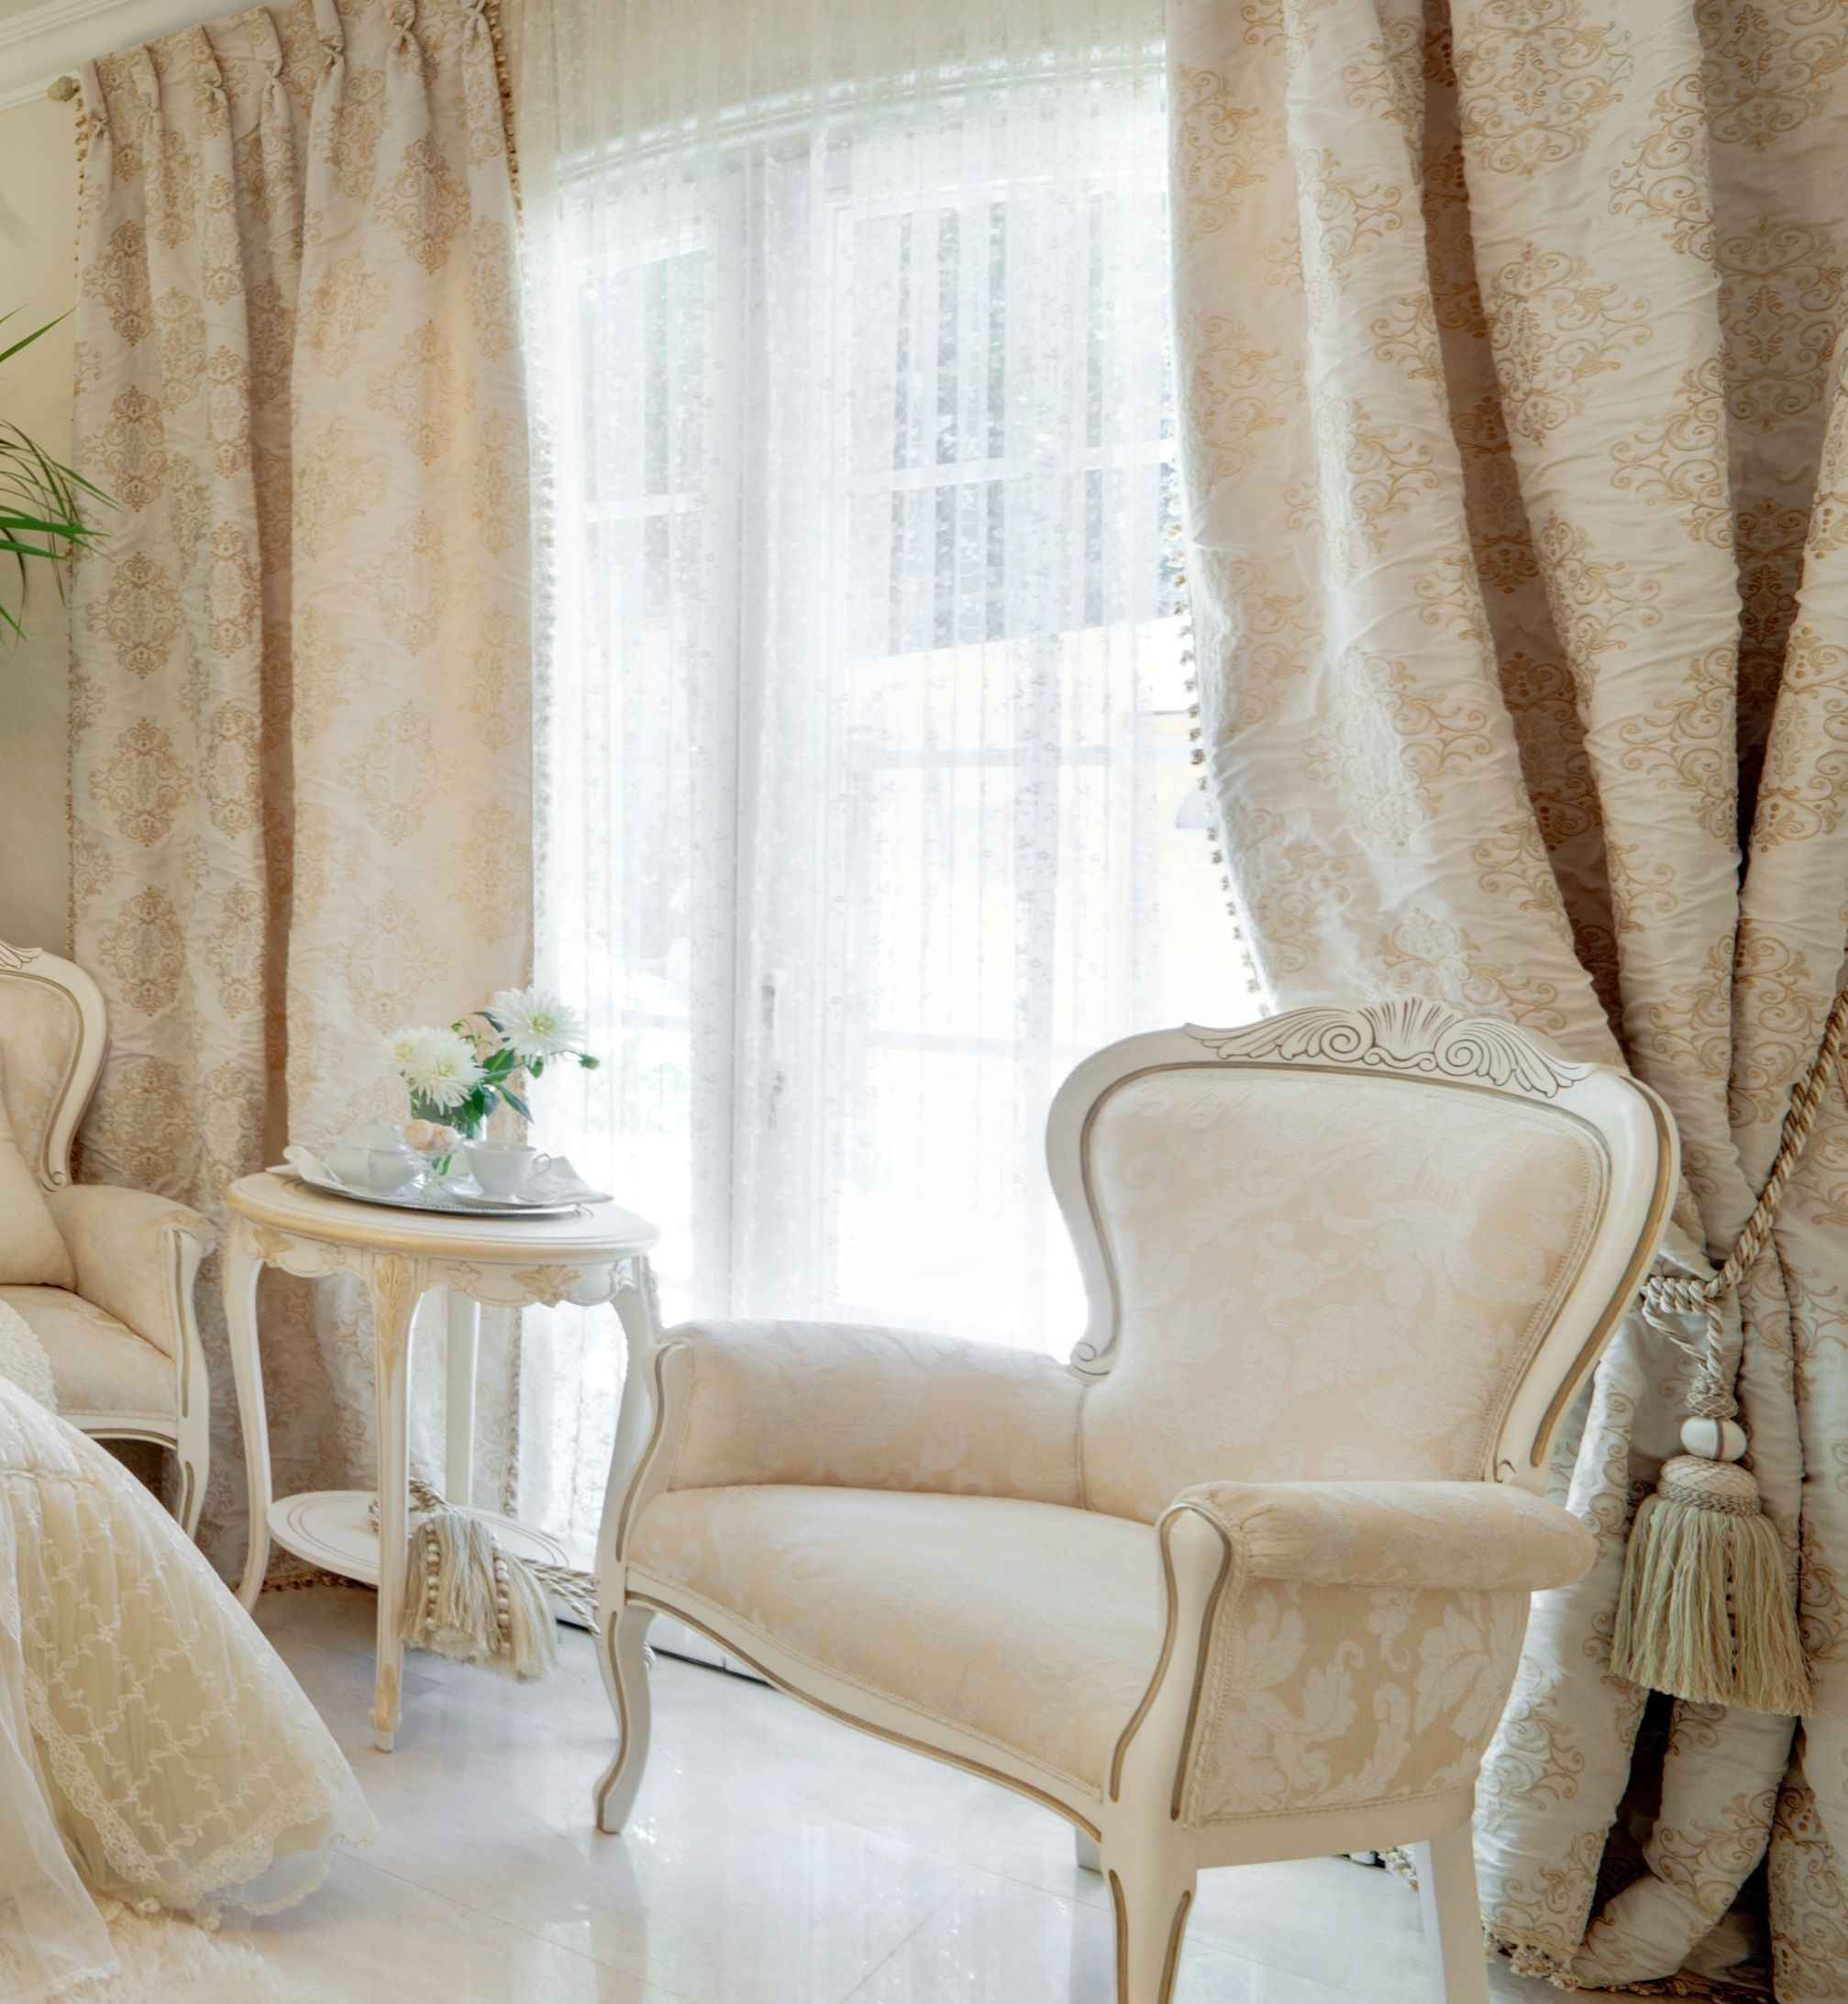 LUXURY BERSANI HOME CURTAINS COLLECTION - creamy and gold color ...